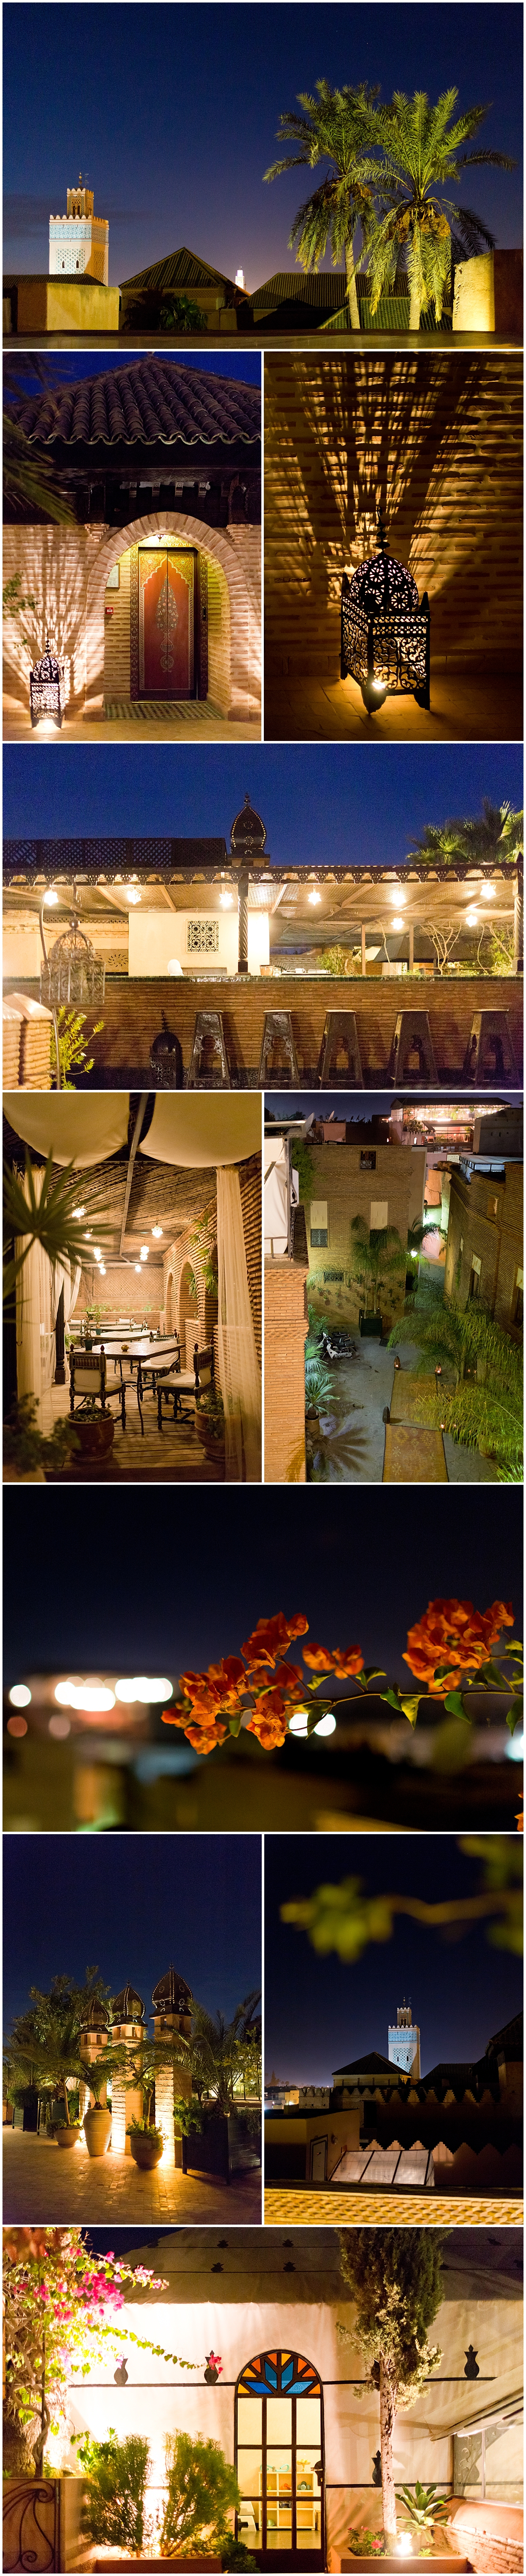 La Sultana Restaurant in Marrakech, Morocco - rooftop bar with view